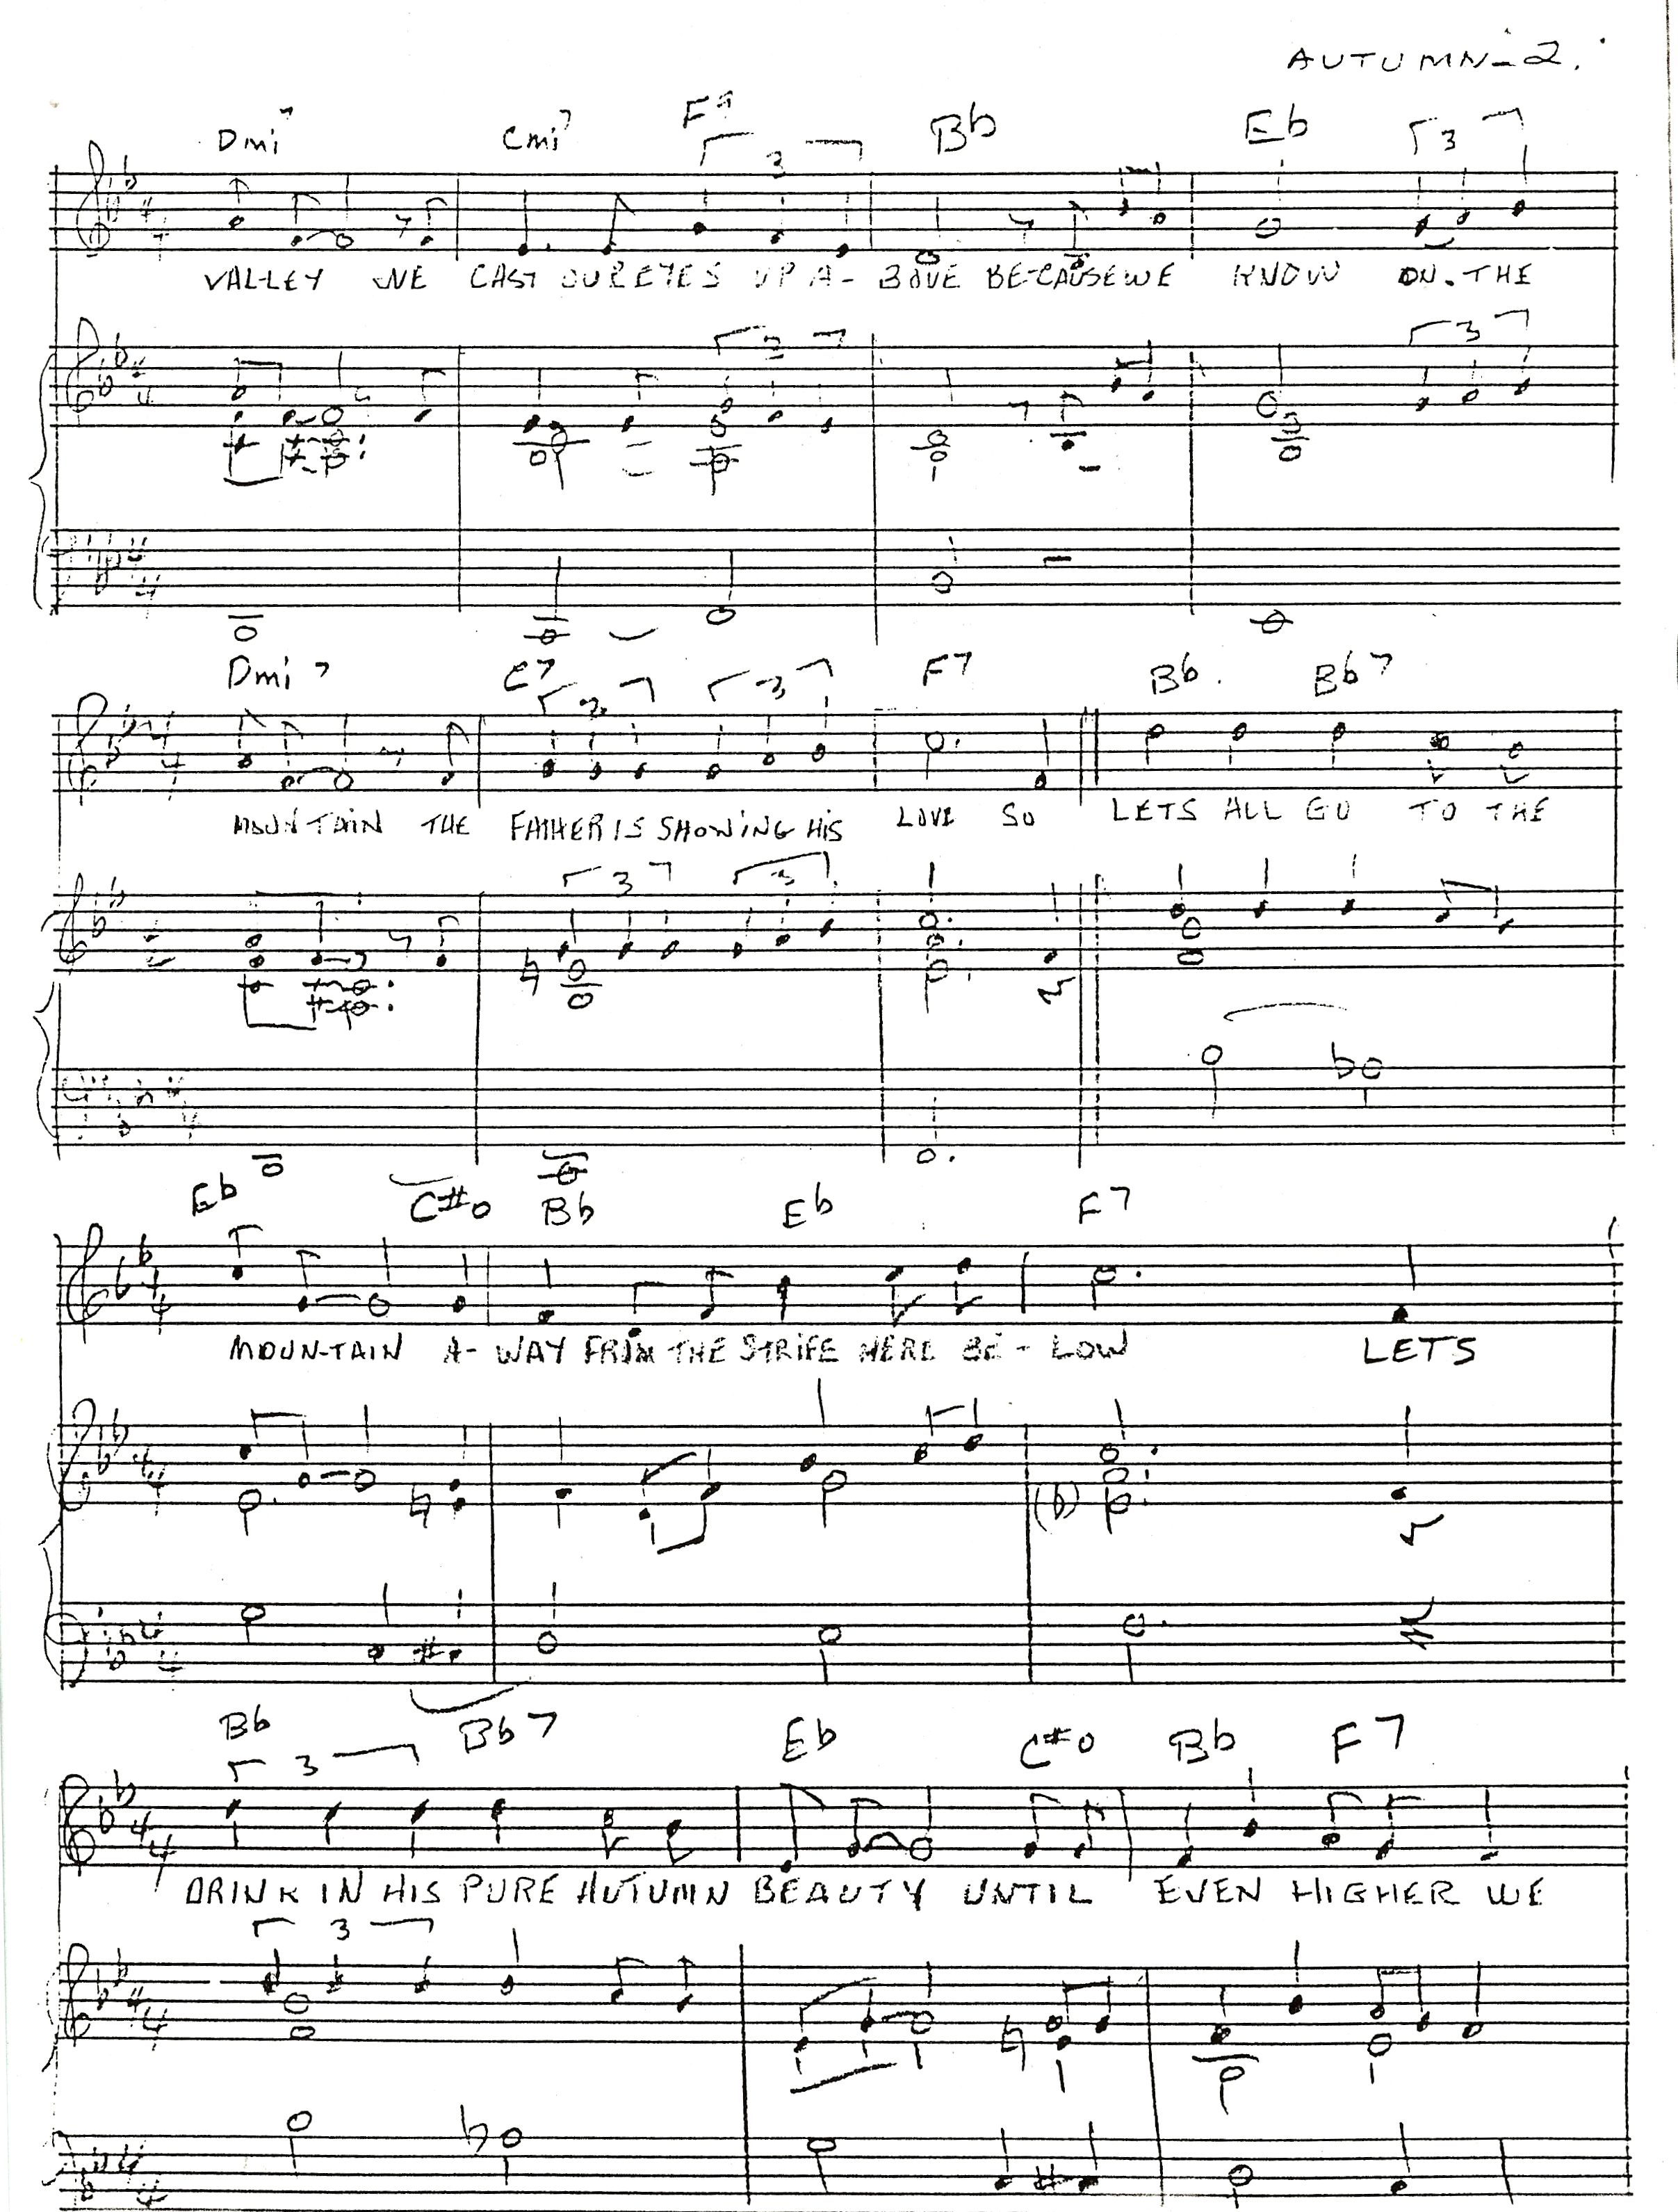 song page 2.JPG